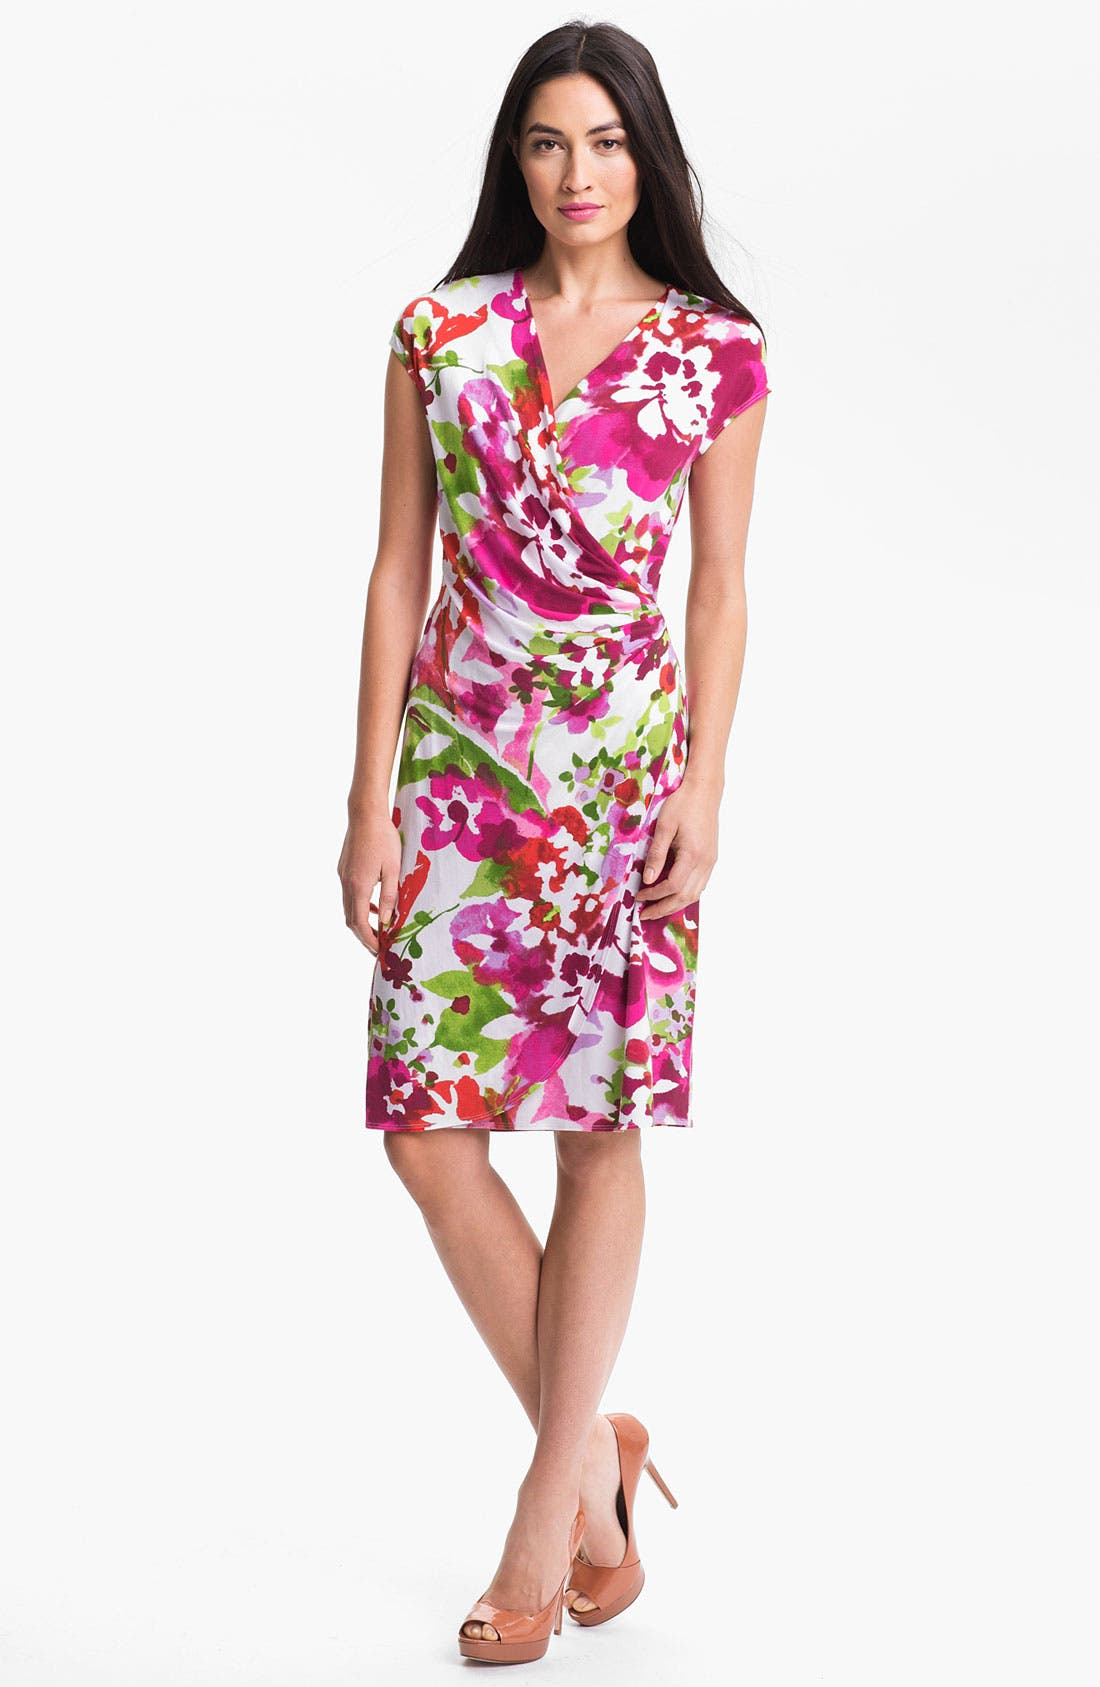 Alternate Image 1 Selected - Tommy Bahama 'Madcap A Floral' Dress